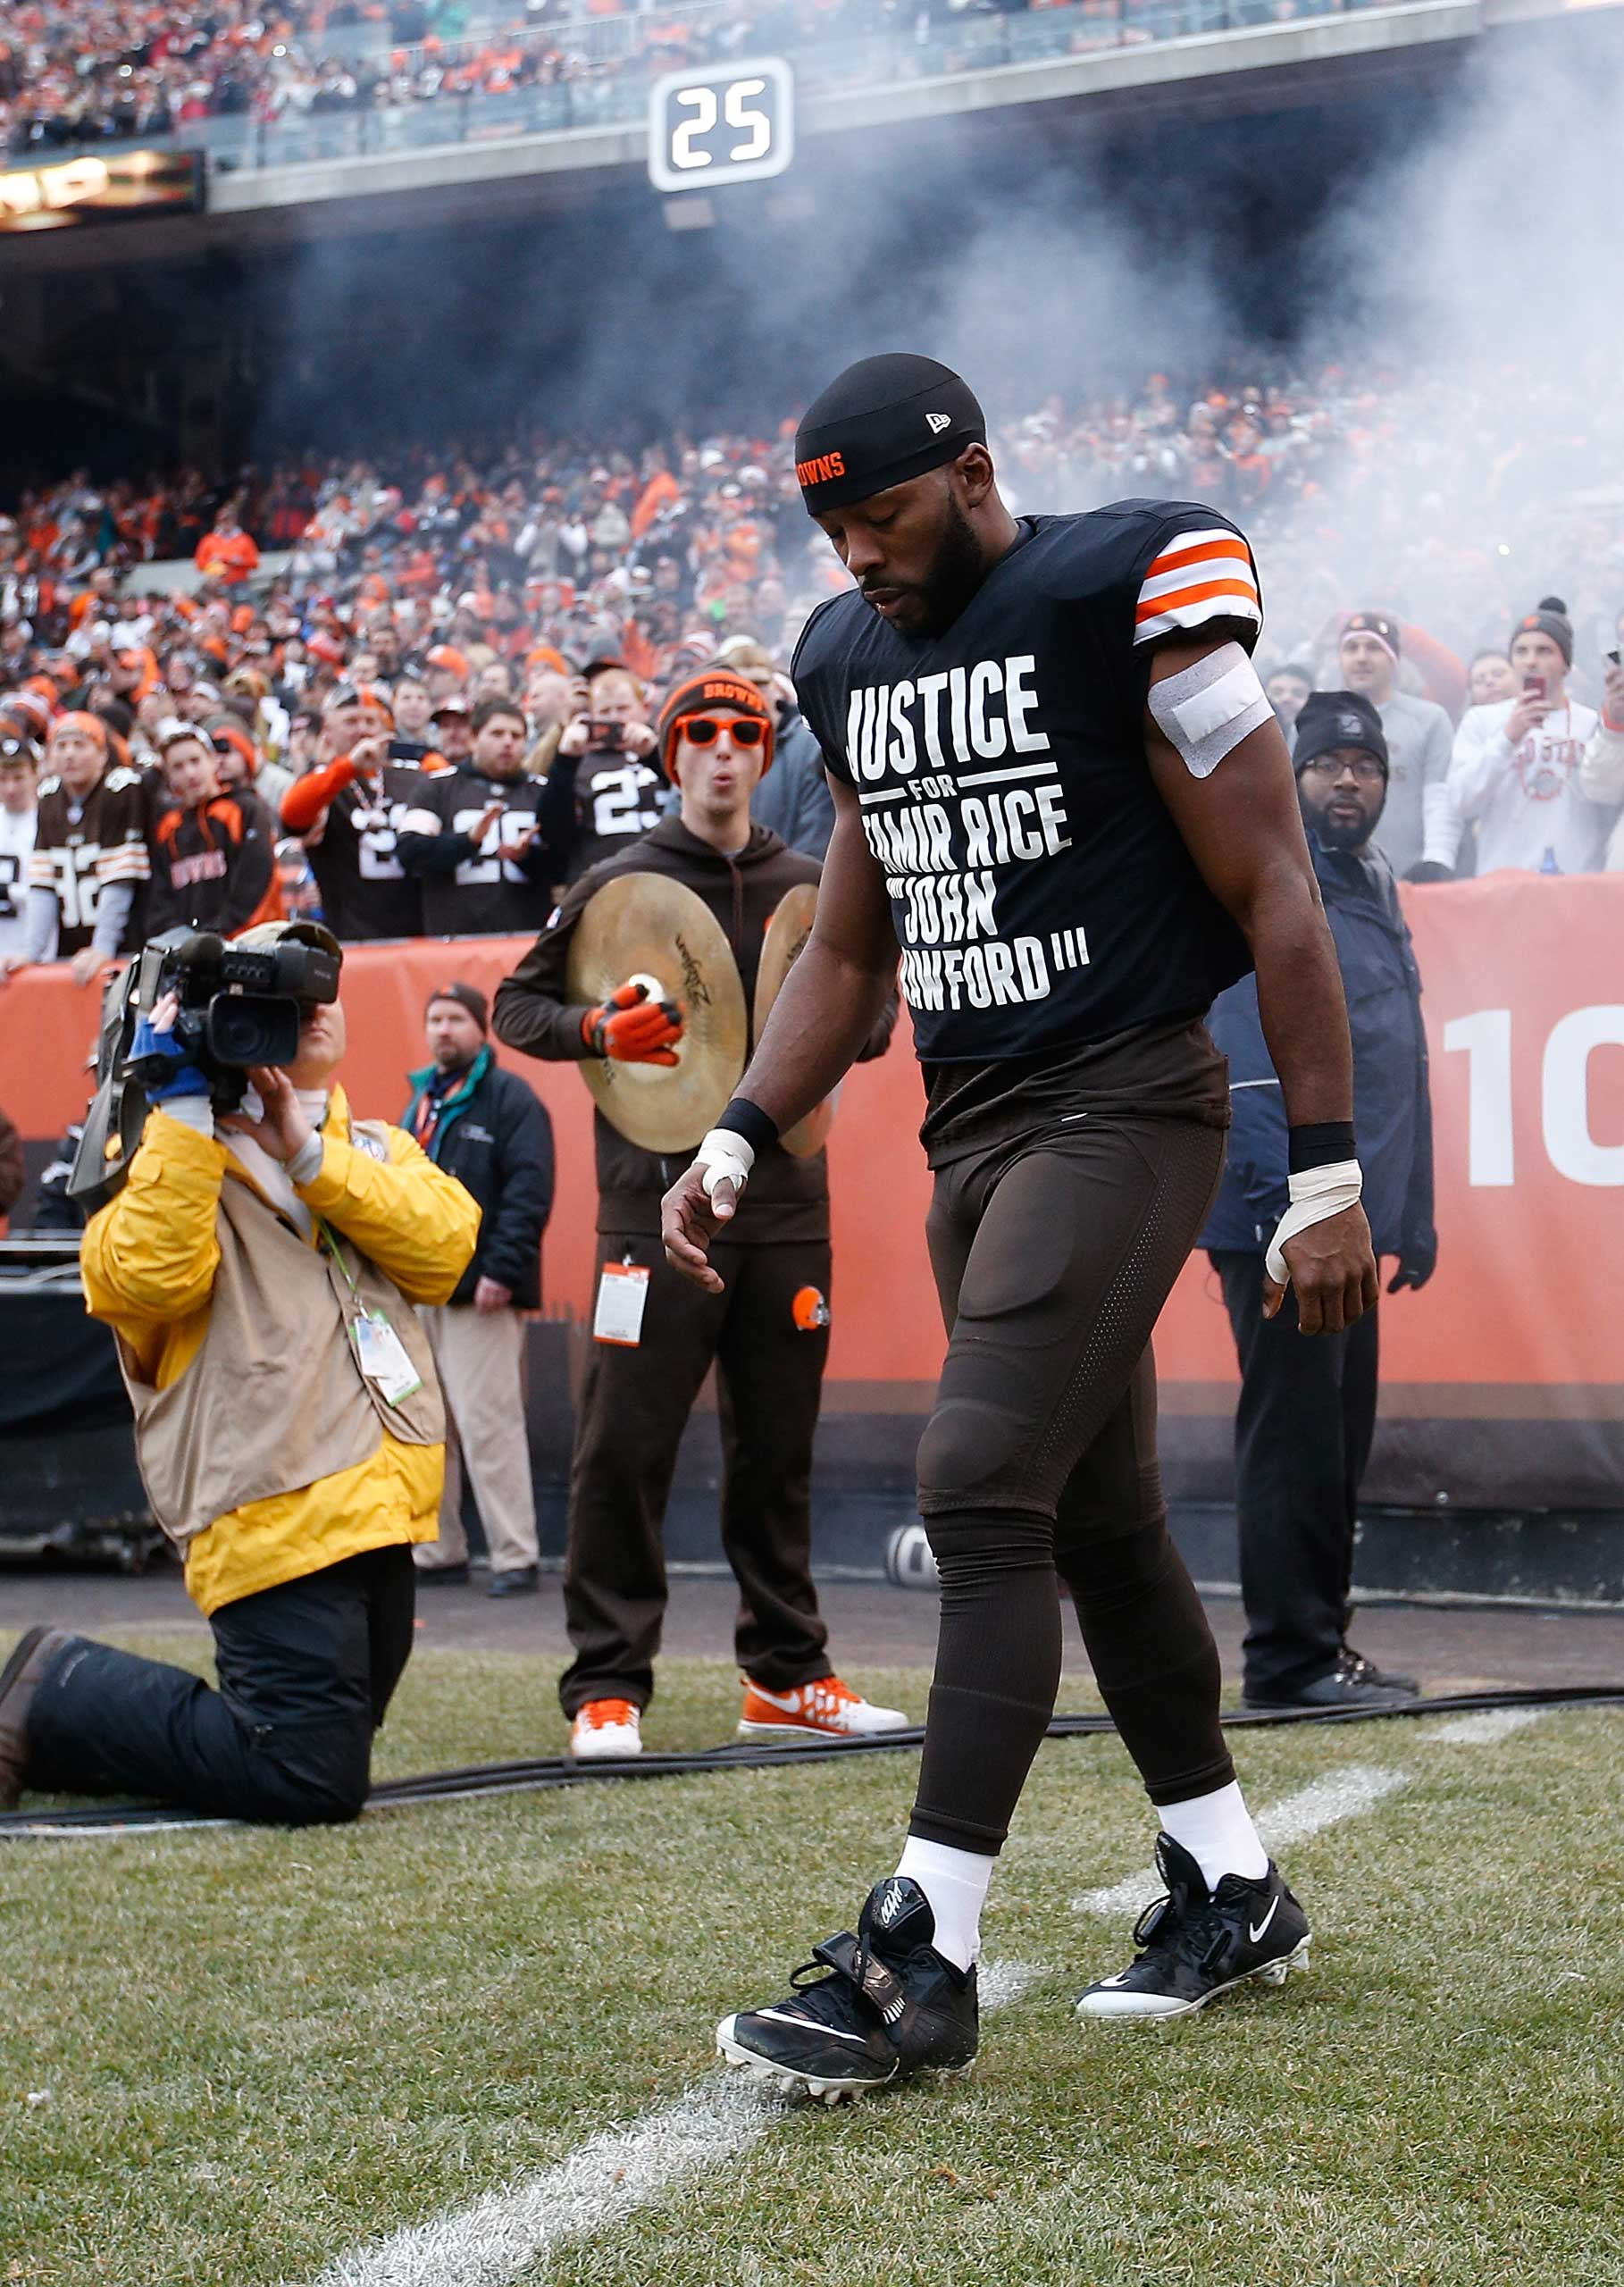 Andrew Hawkins #16 of the Cleveland Browns walks onto the field while wearing a protest shirt during introductions prior to the game against the Cincinnati Bengals at FirstEnergy Stadium in Cleveland on Dec. 14, 2014.